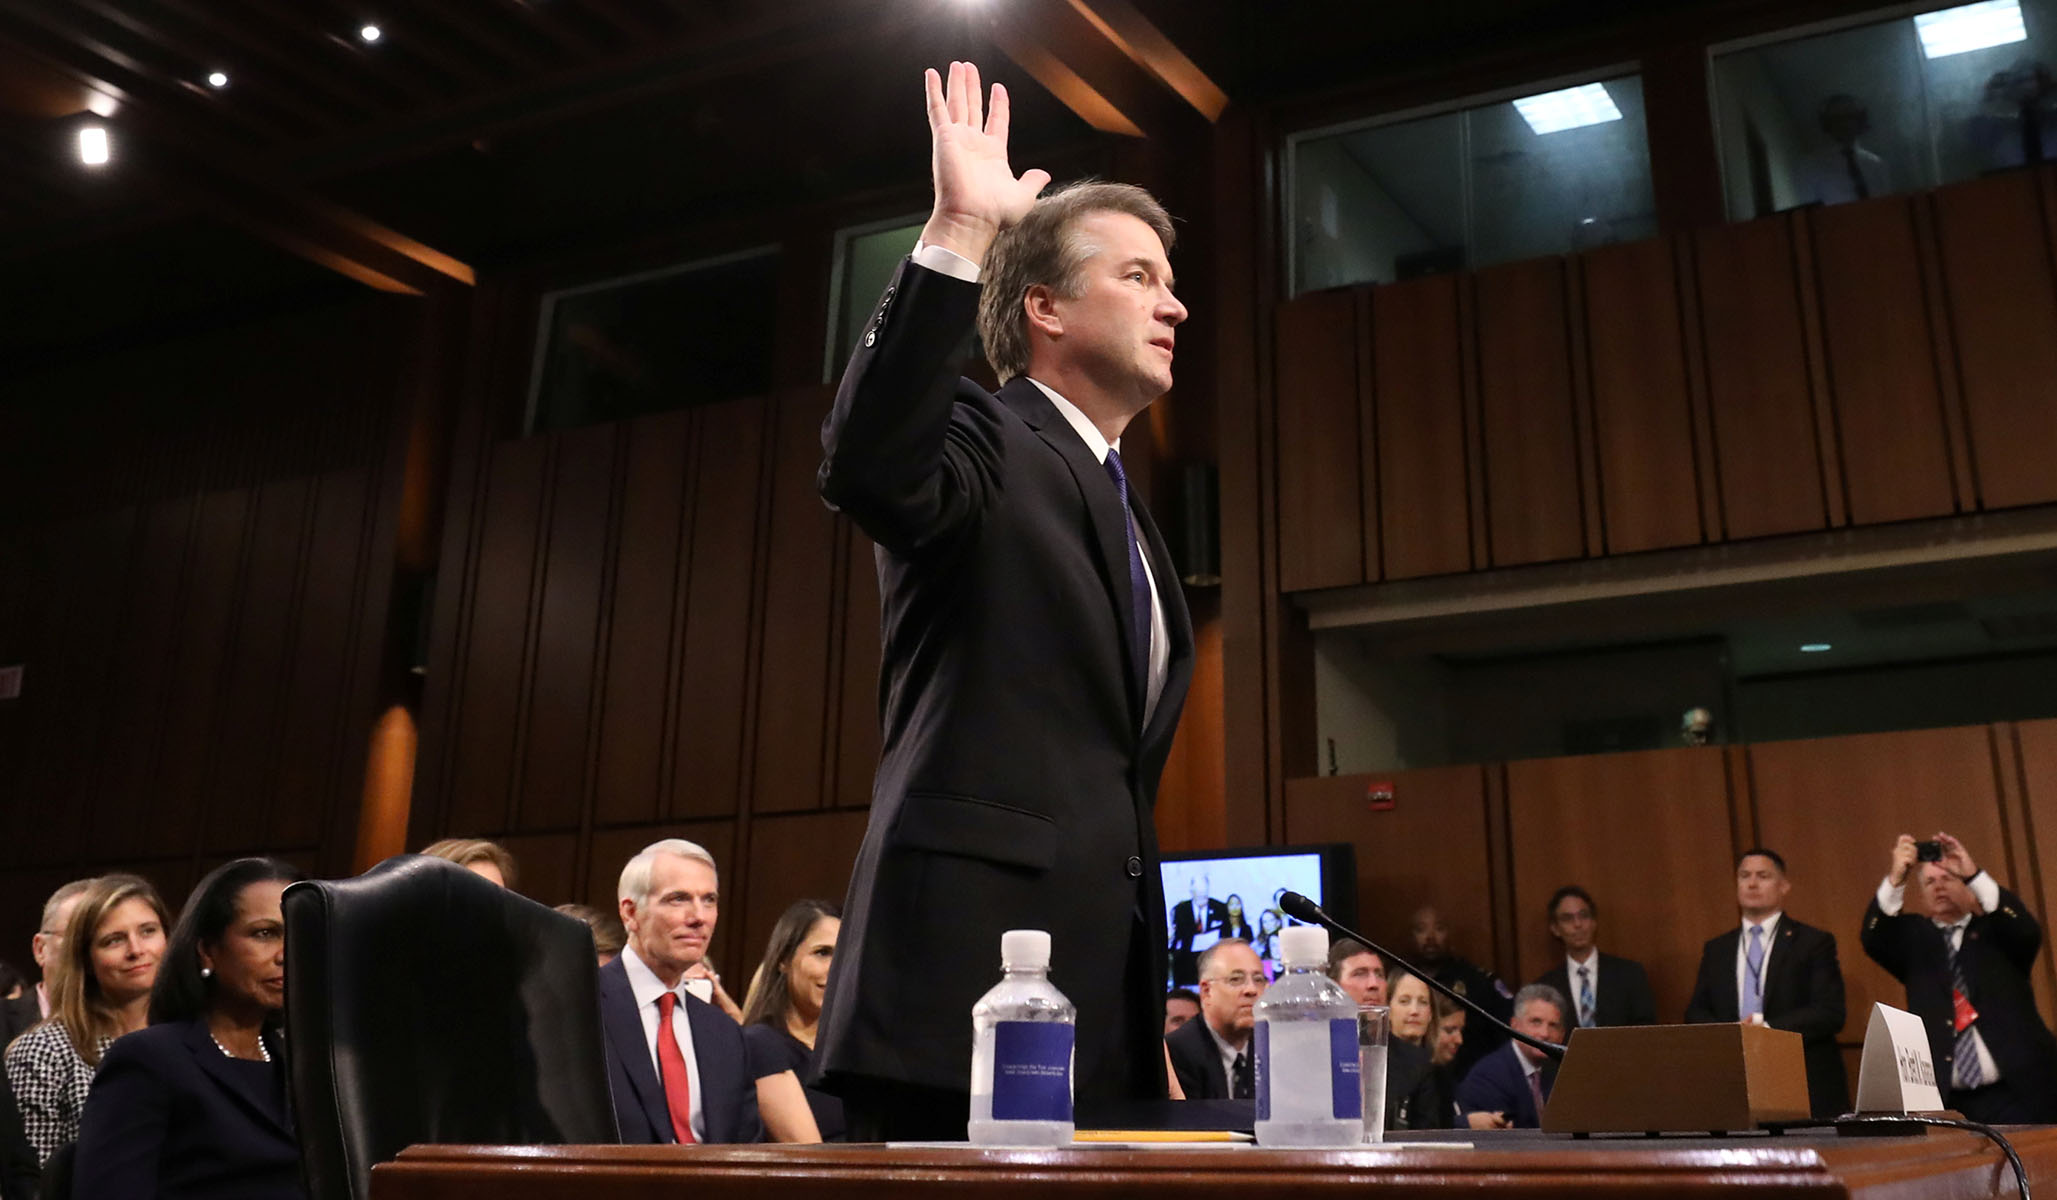 nationalreview.com - David French - Brett Kavanaugh Sex-Assault Allegation: Christine Blasey Ford Must Agree to Testify